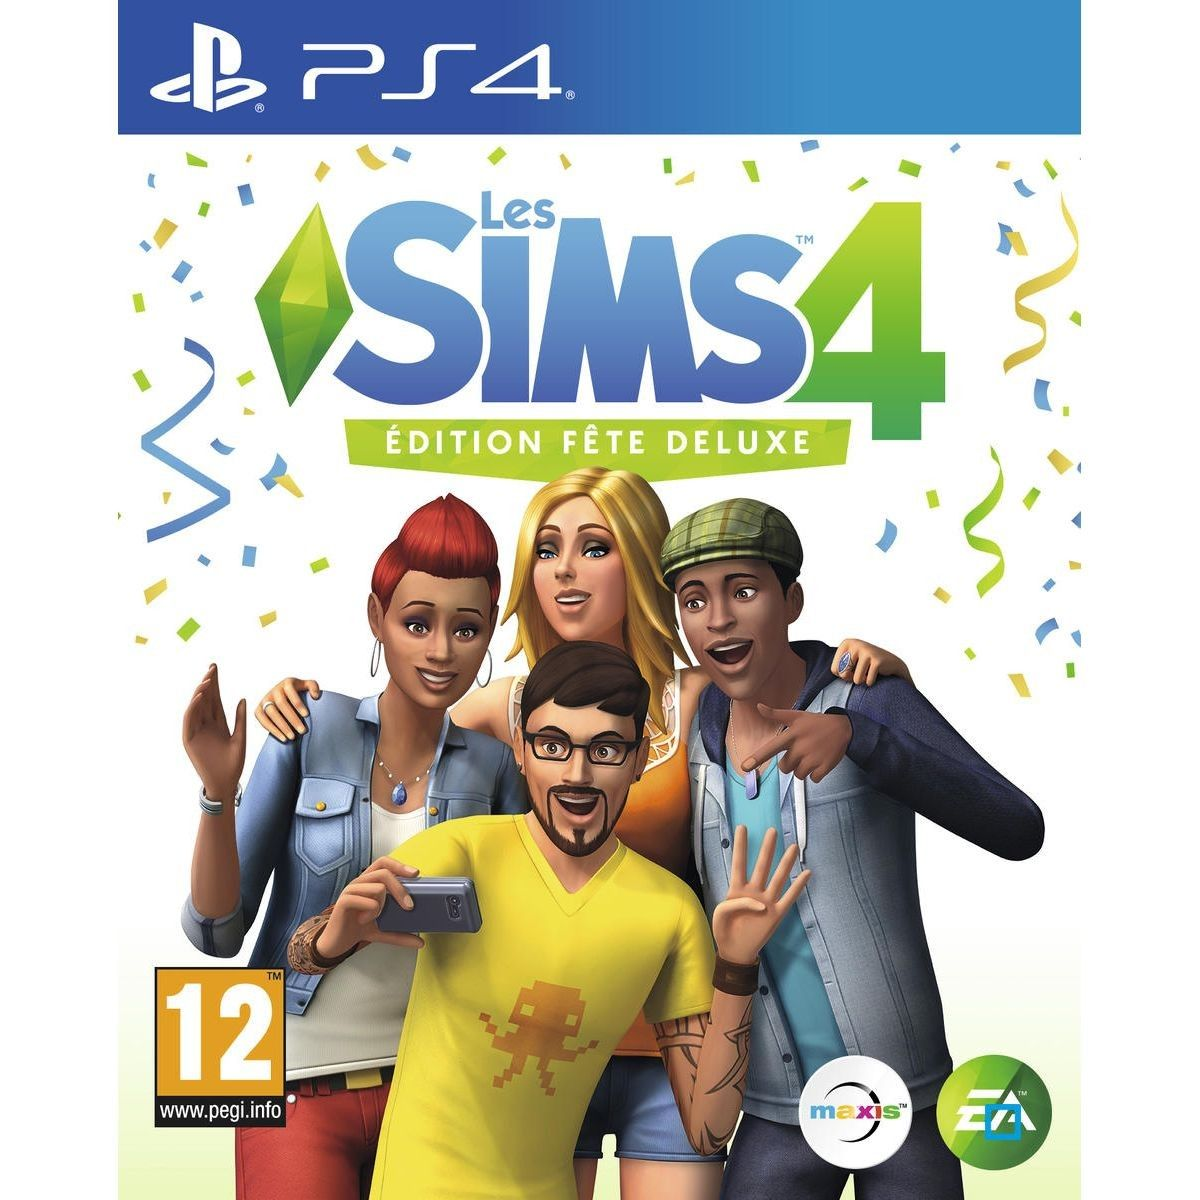 Les Sims 4 Edition Fete Deluxe Ps4 Taille Taille Unique Sims Xbox Game Injustice 2